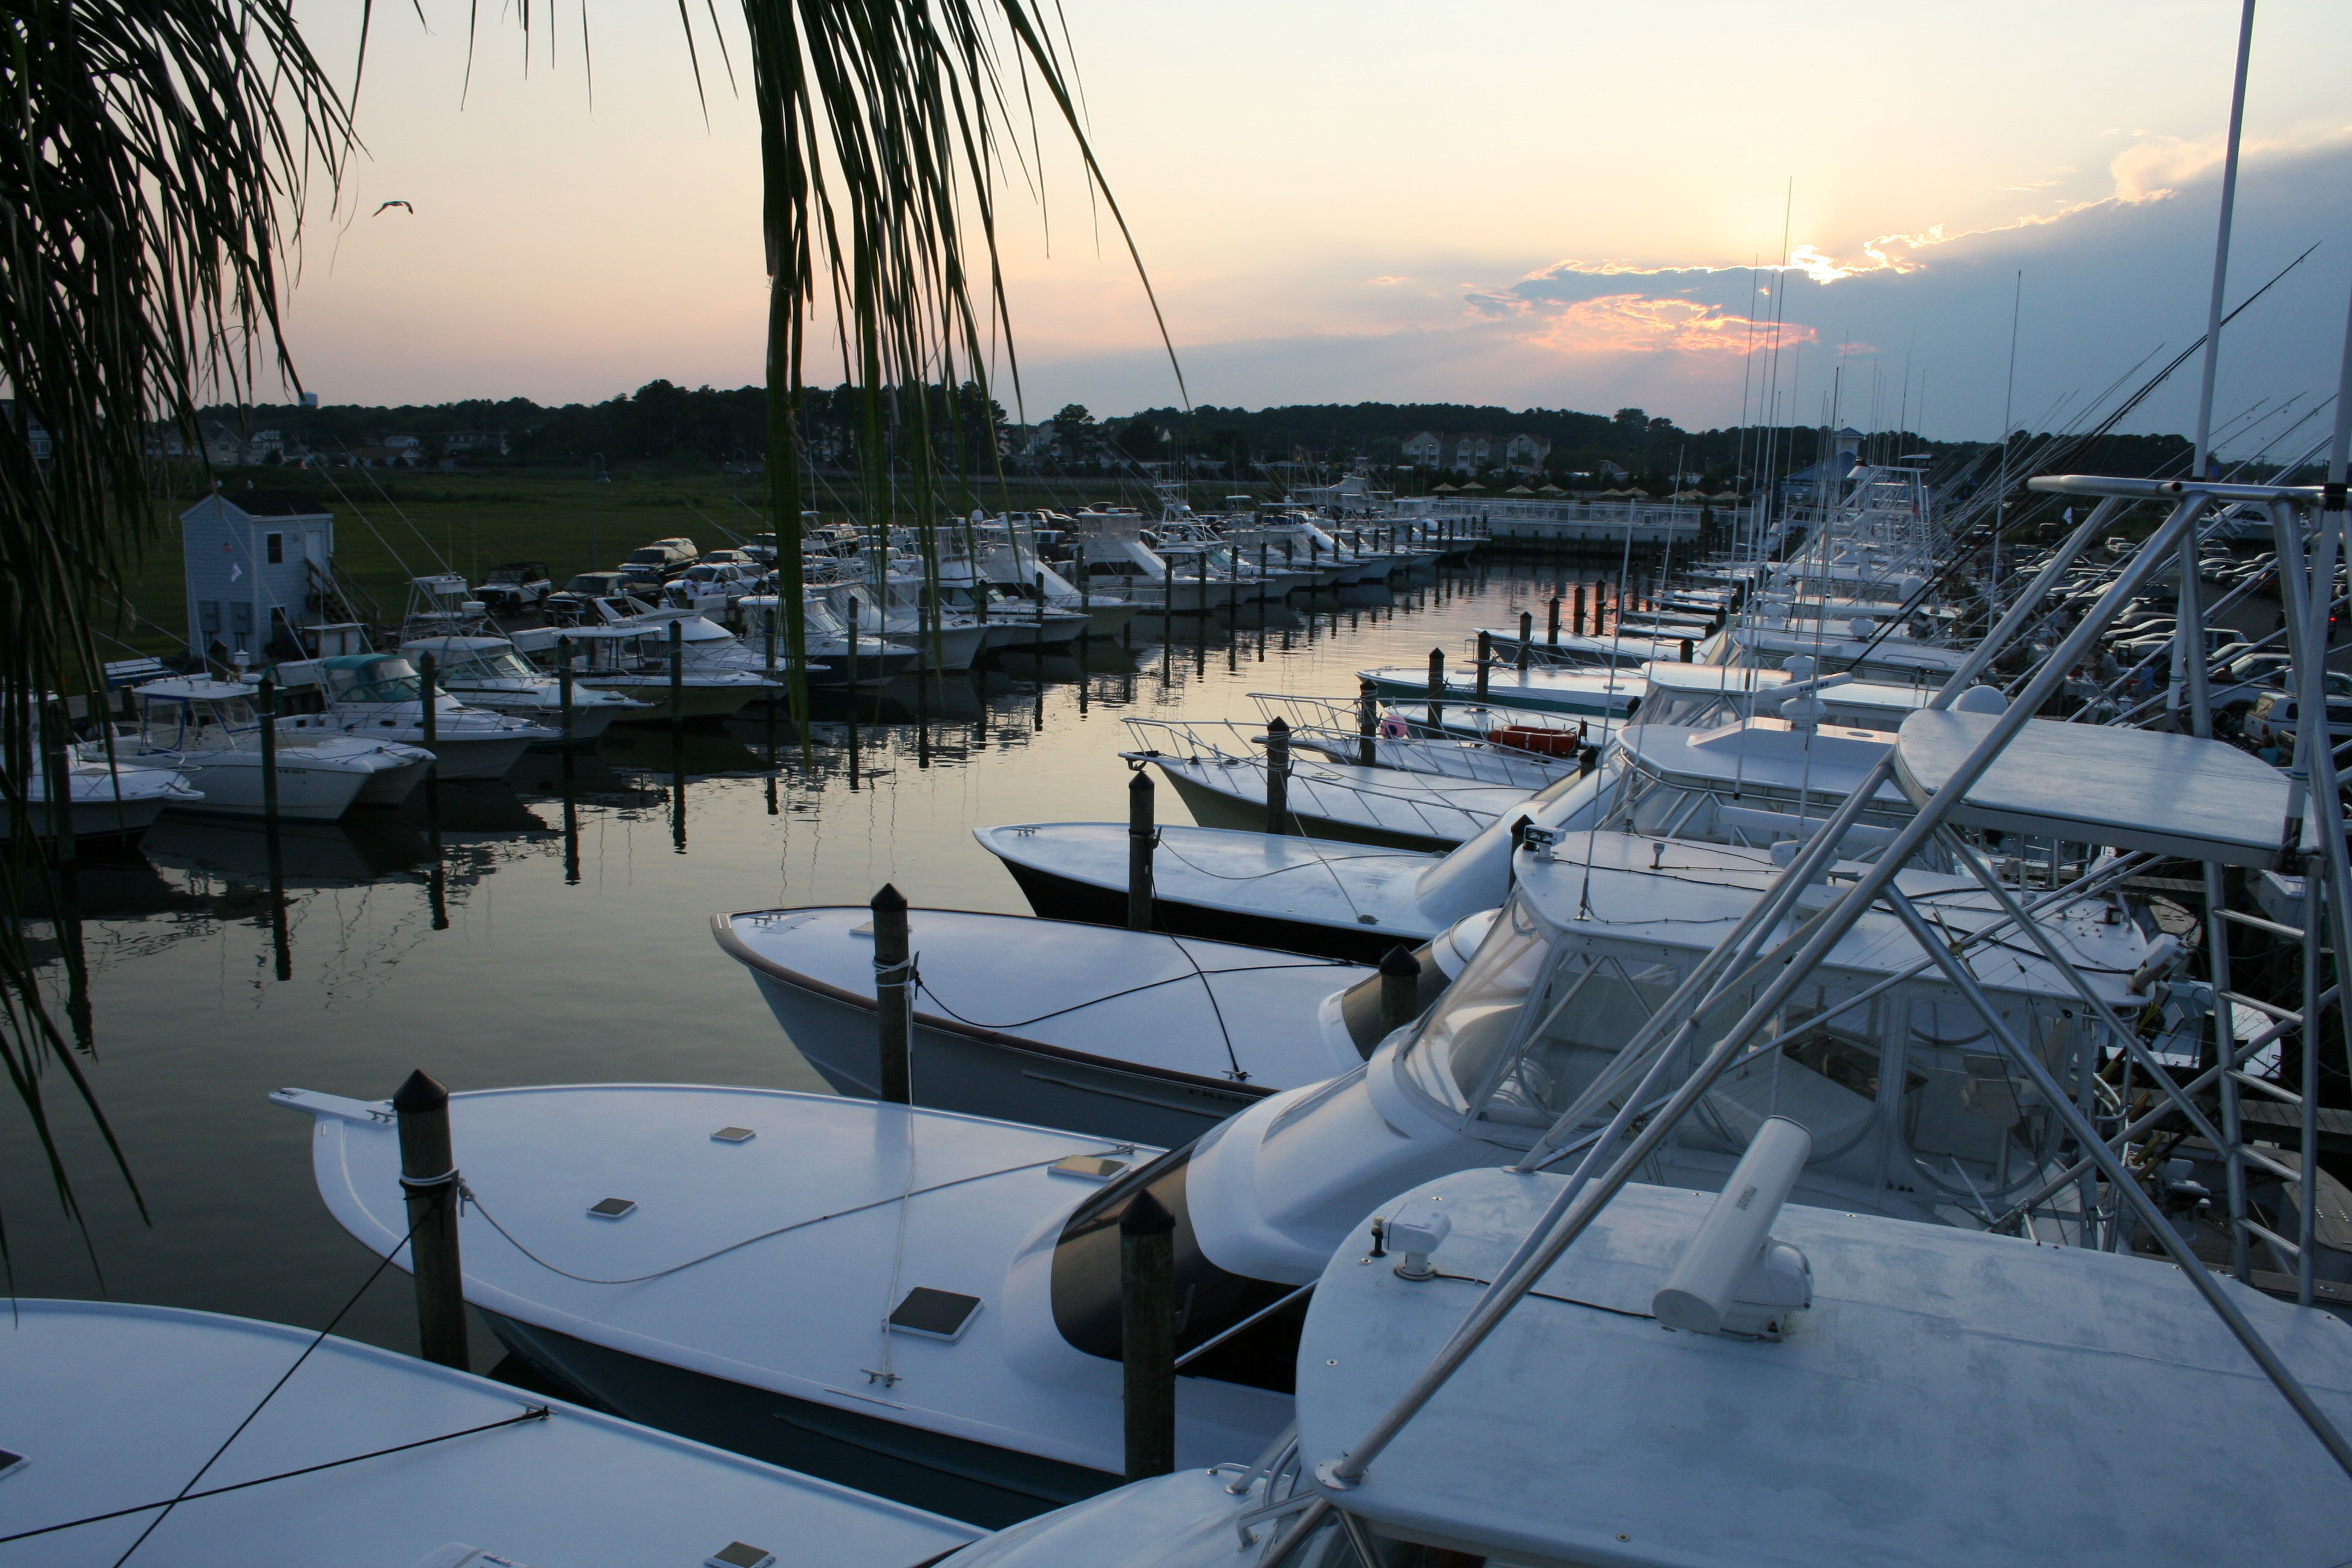 Ocean city fishing center in ocean city md united states for Ocean city nj fishing charters